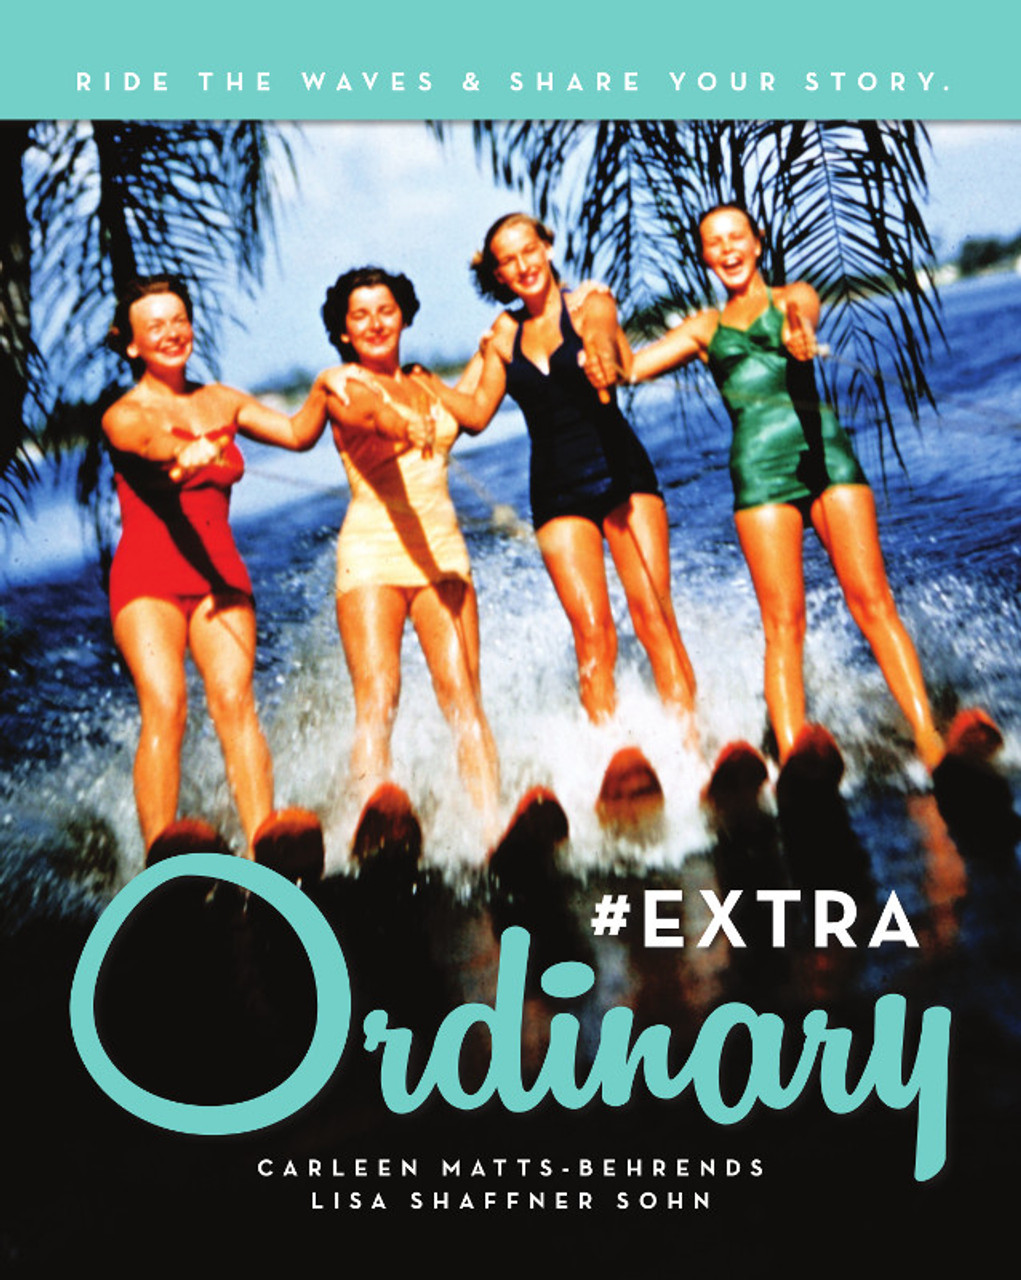 #EXTRAOrdinary: Ride the Waves & Share Your Story